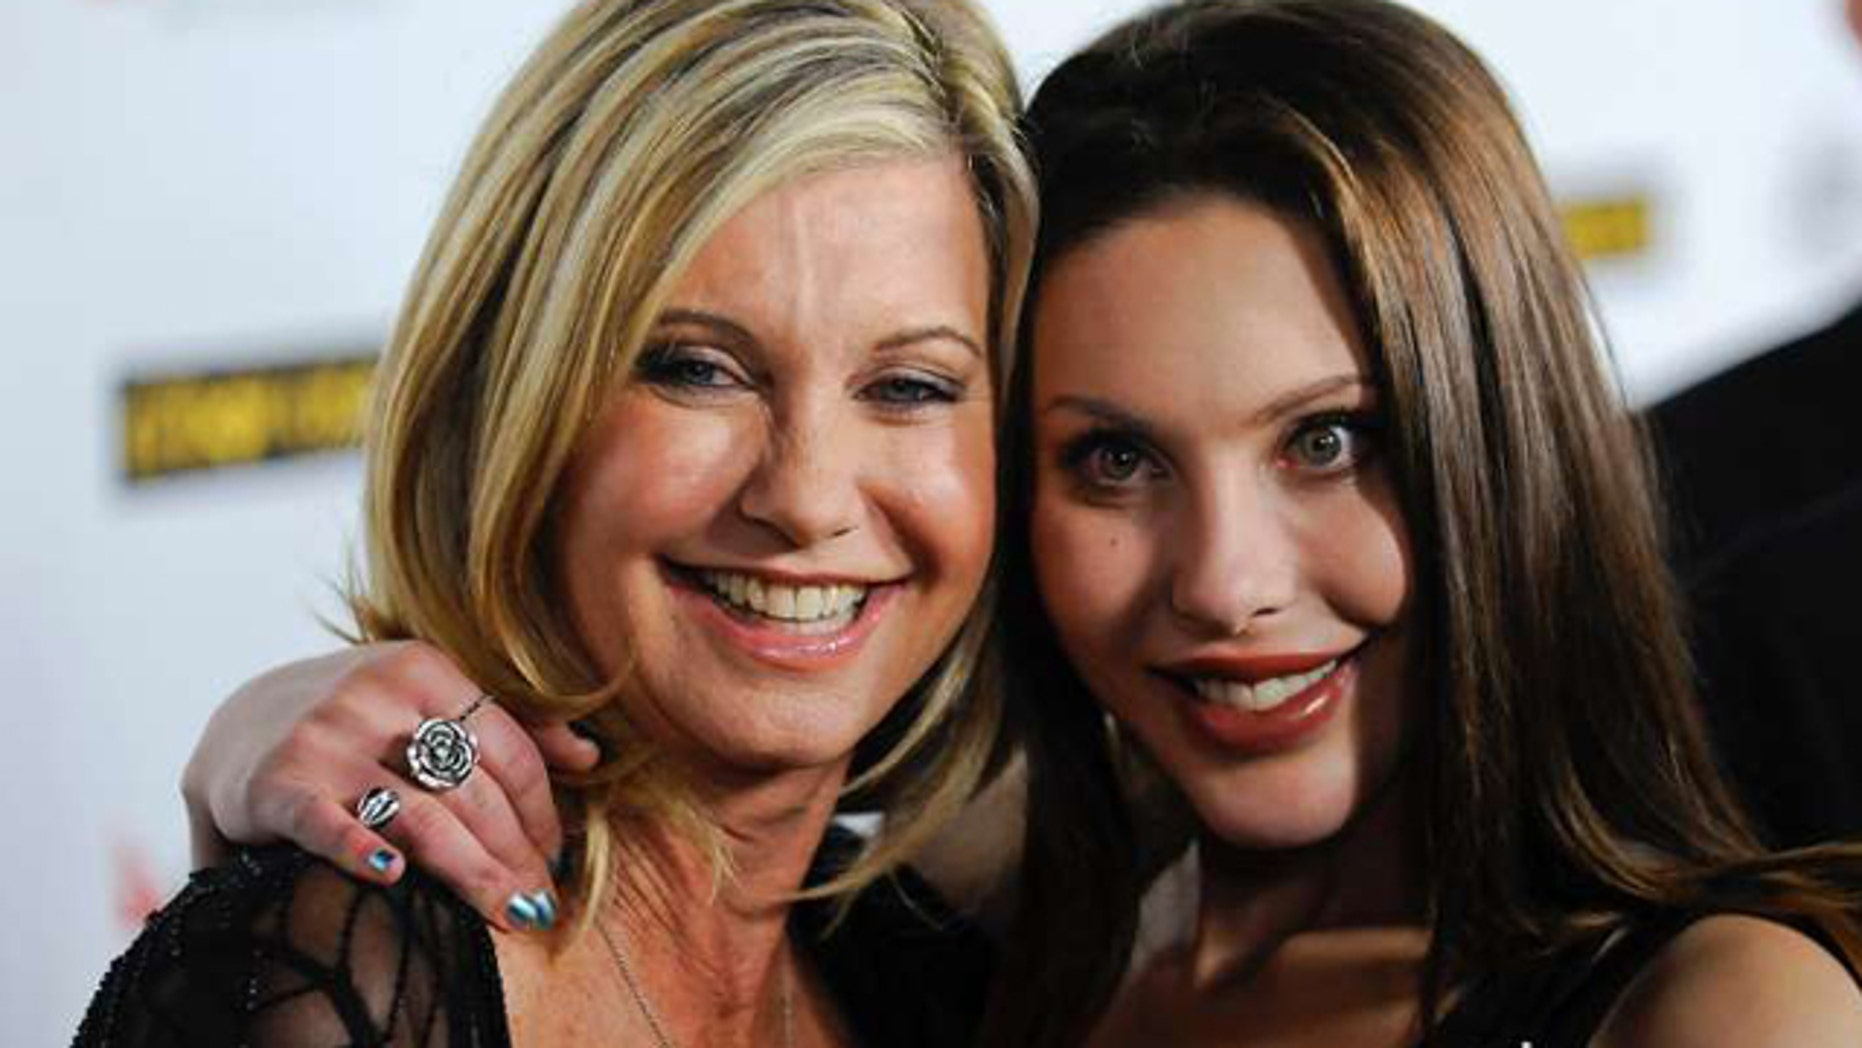 """Oct. 8, 2015: Olivia Newton-John and daughter Chloe Lattanzi are pictured promoting Lattazi's single """"You Have to Believe"""", a cover of Newton-John's 1980 hit """"Magic"""" (Reuters/Gus Ruelas)"""